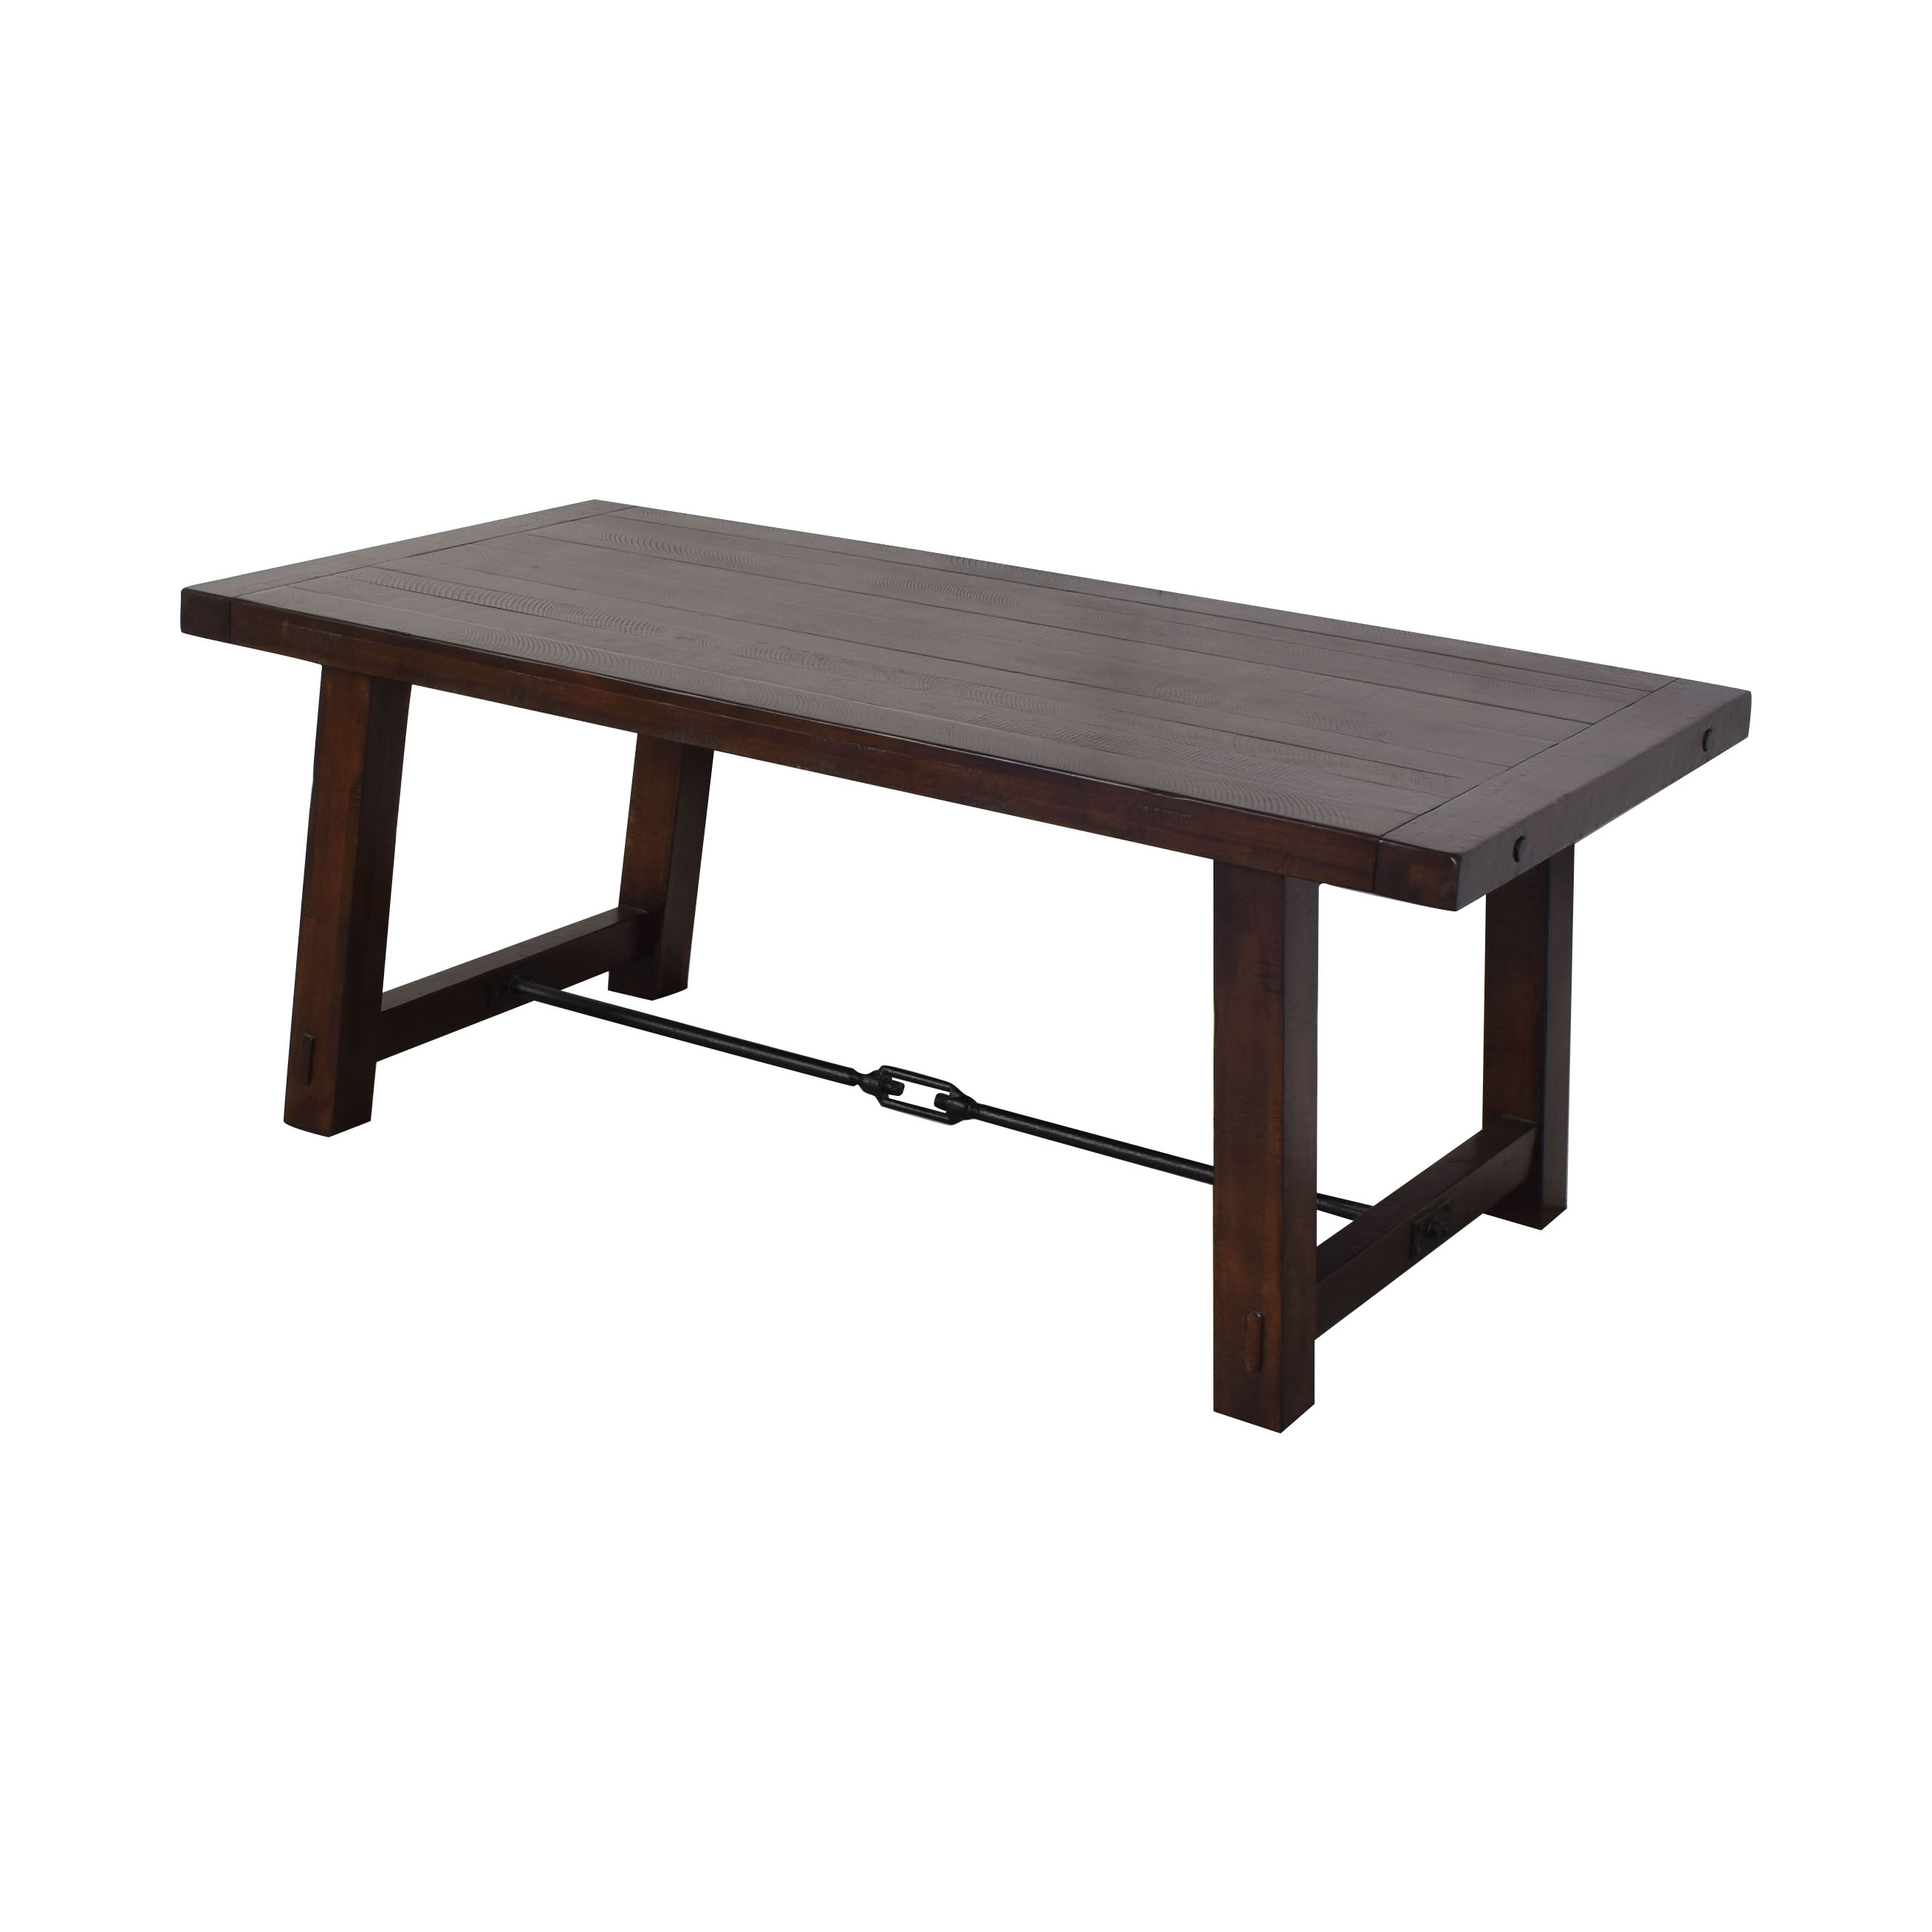 Pottery Barn Pottery Barn Benchwright Dining Table price